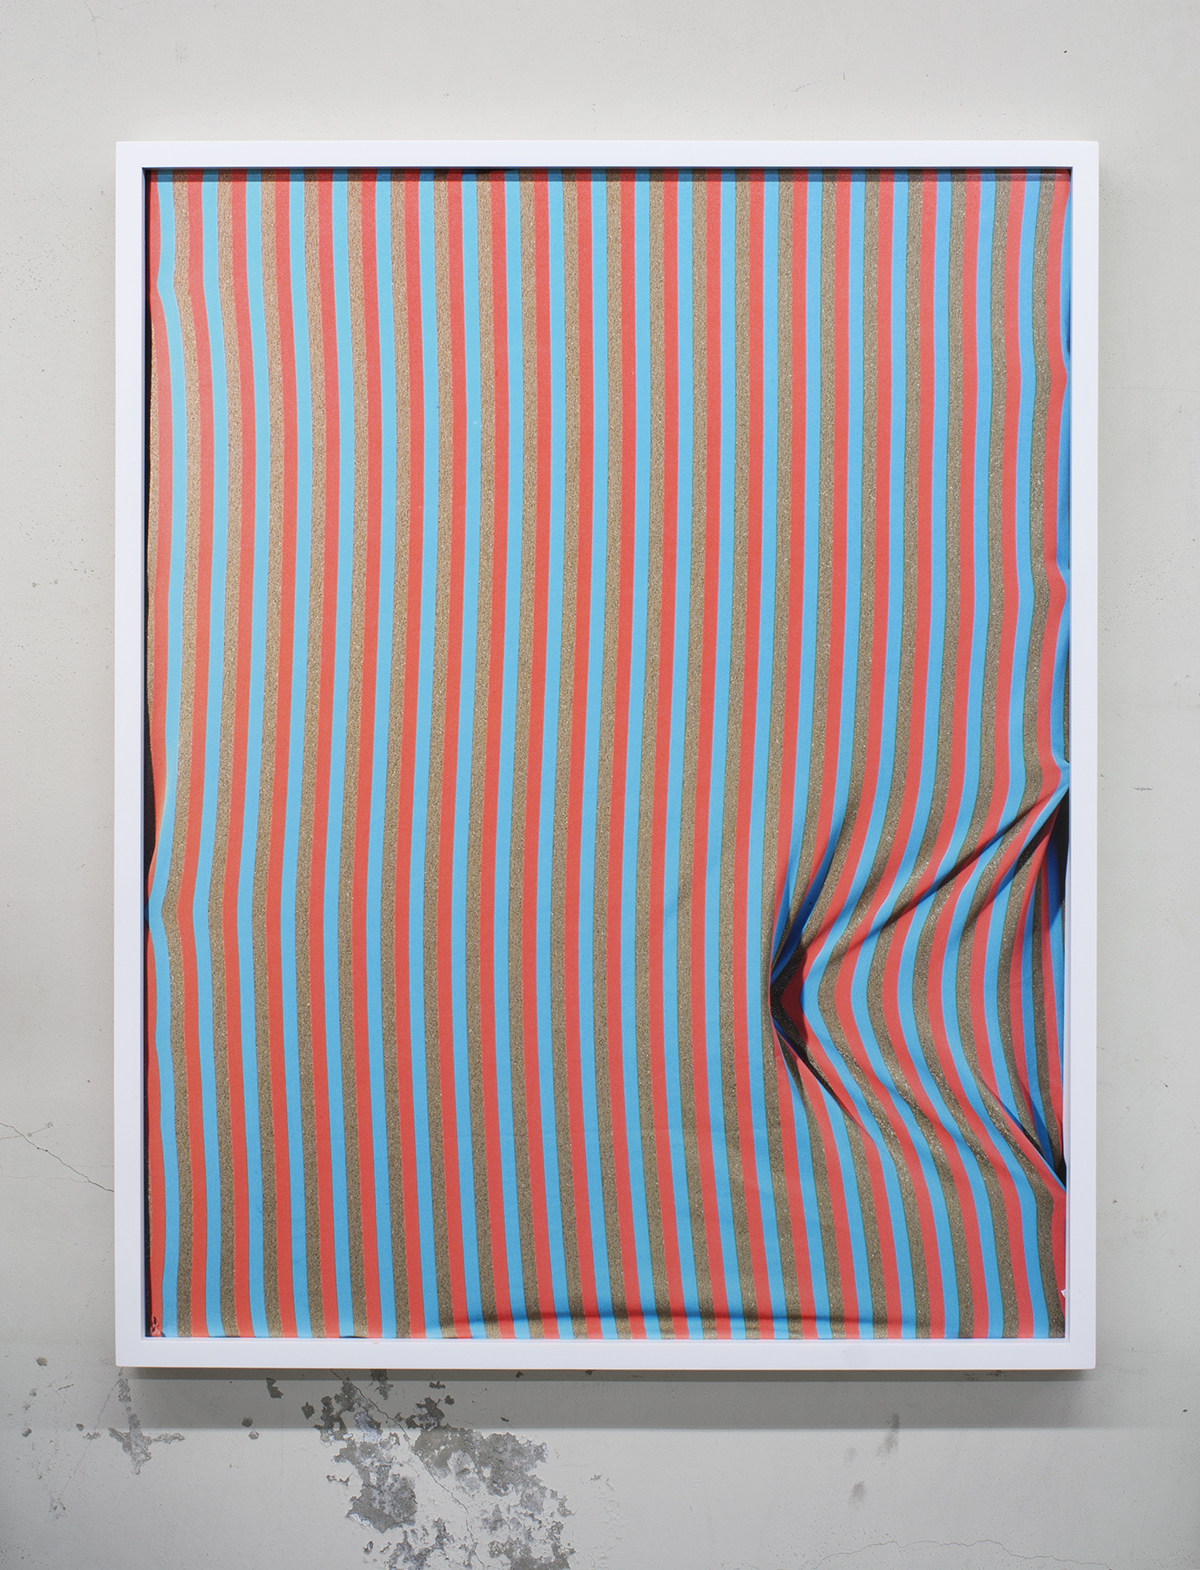 Punch , 2013 Archival pigment print 34 x 27 inches   ————